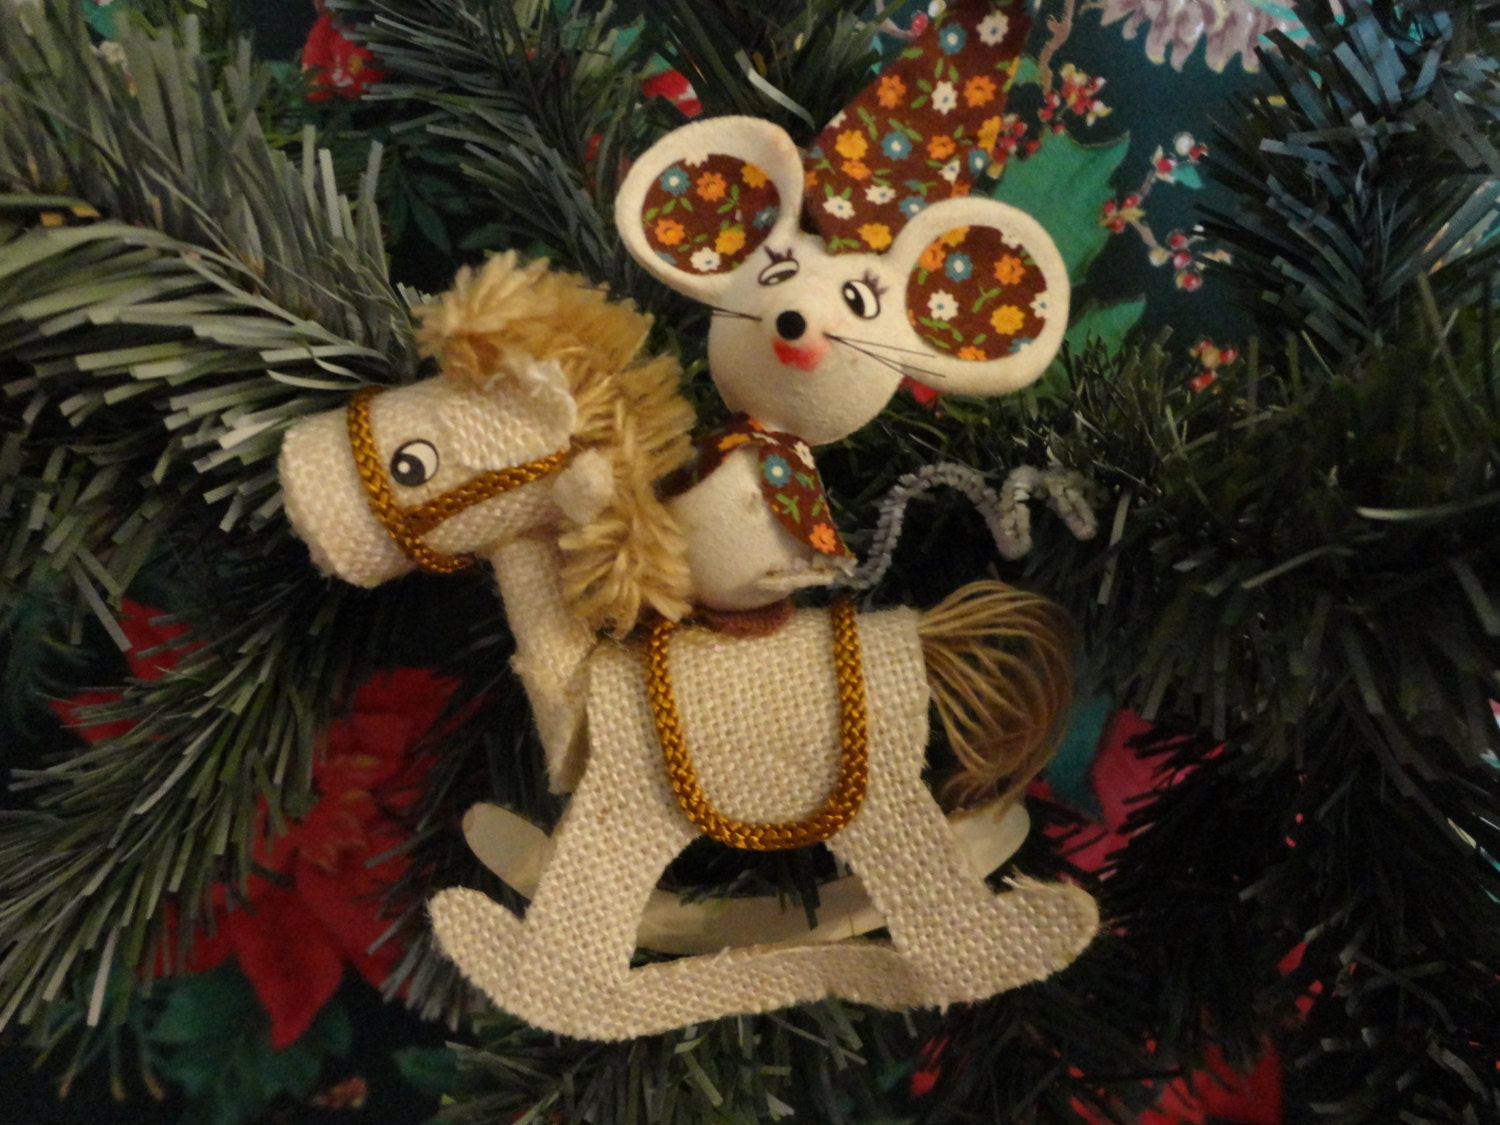 Vintage Christmas 1960s Ornament Felt by CountryCoveCreations